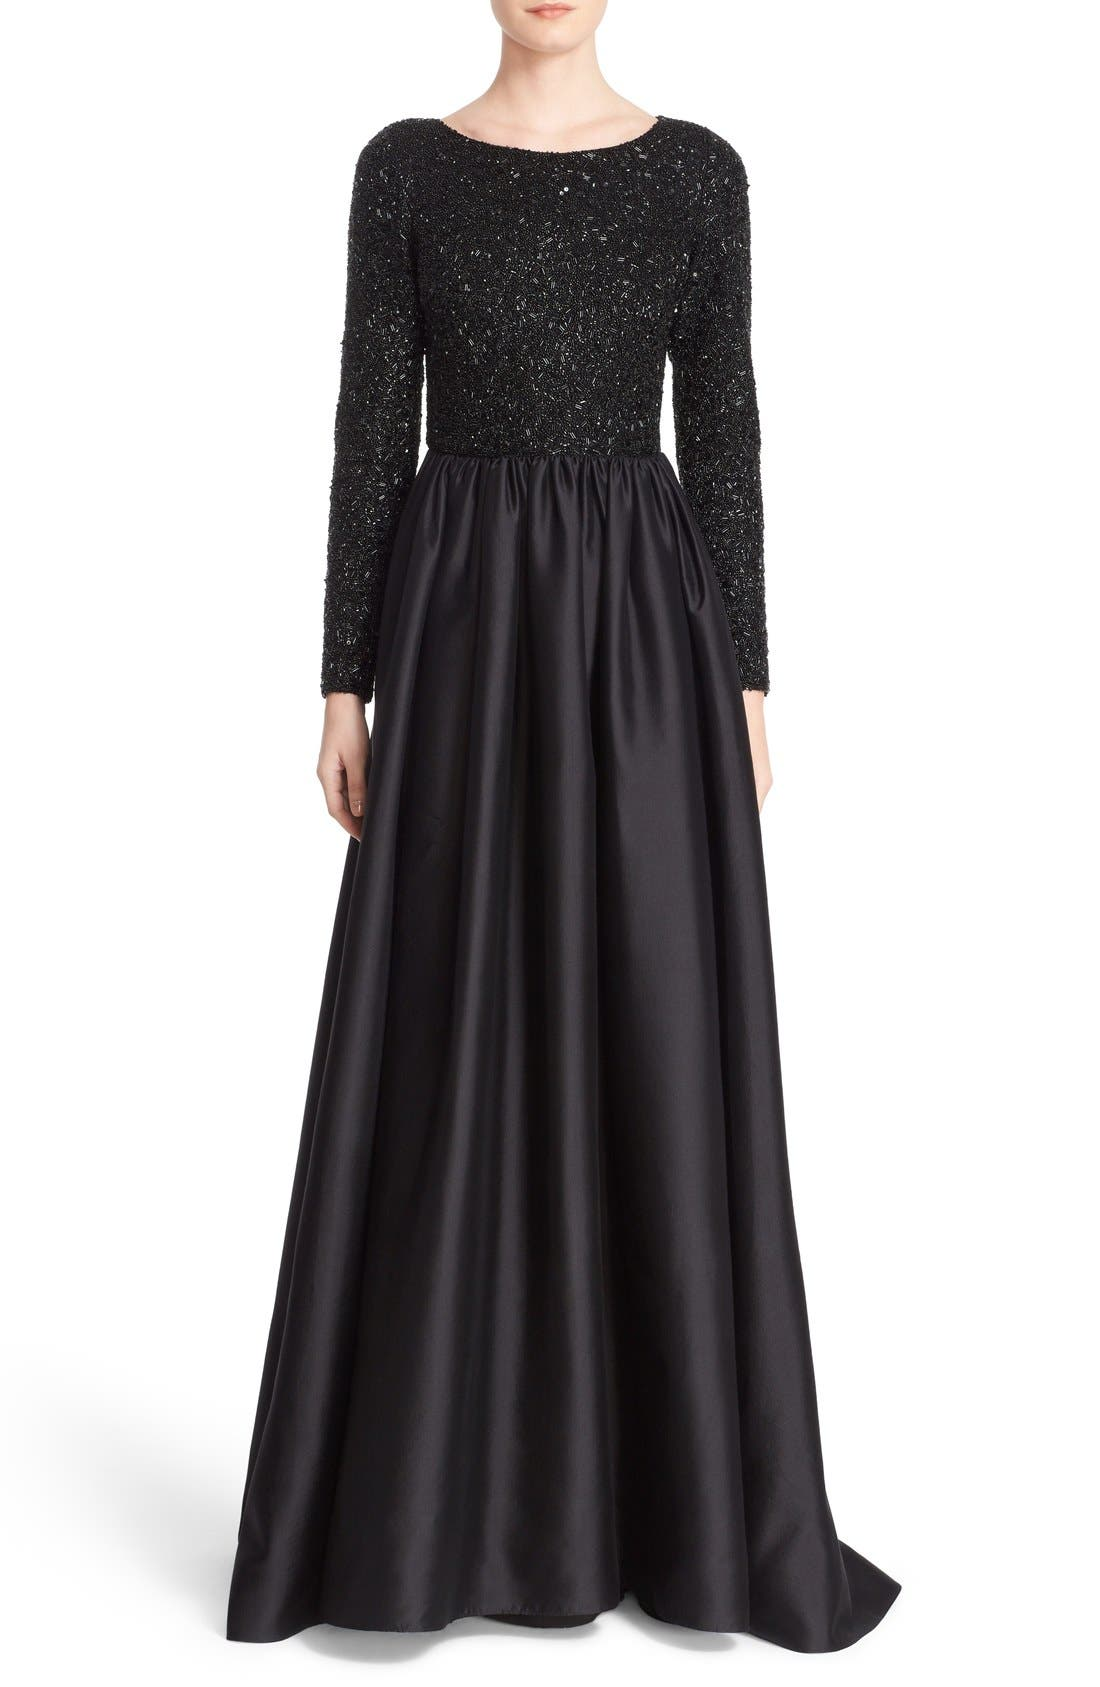 Main Image - Badgley Mischka Couture Embellished Bodice Long Sleeve Gown